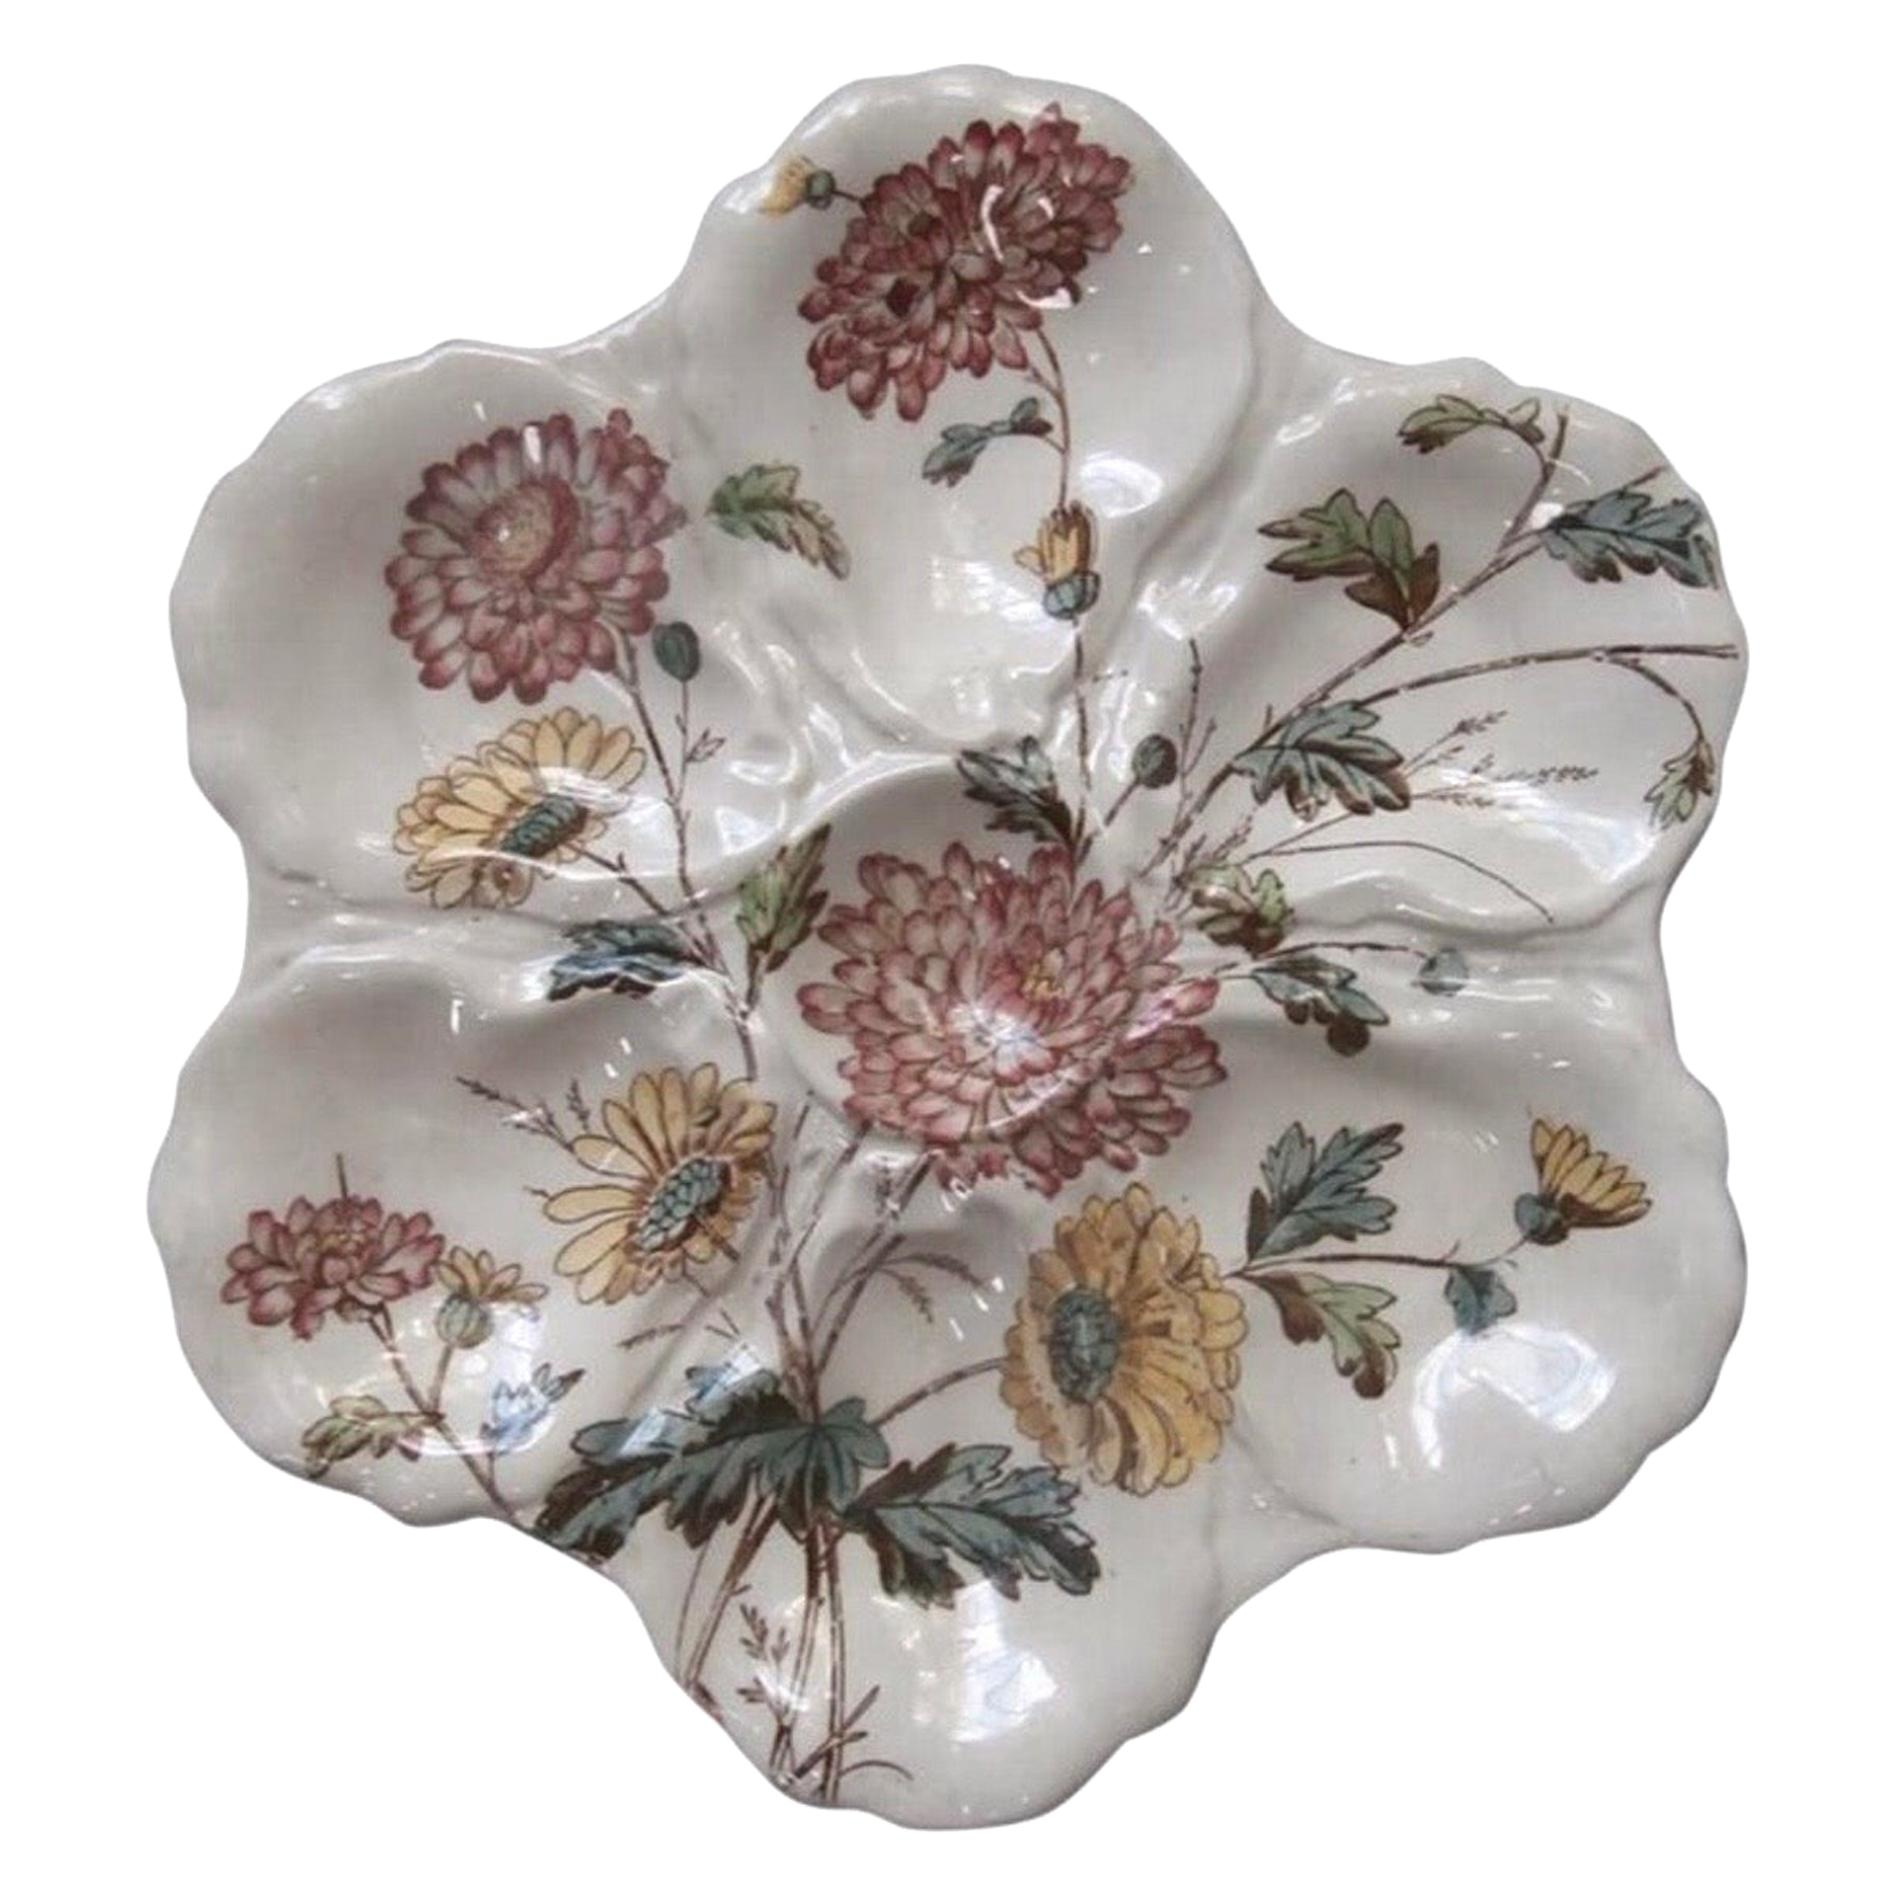 19th Century English Majolica Oyster Plate with Flowers Adderley